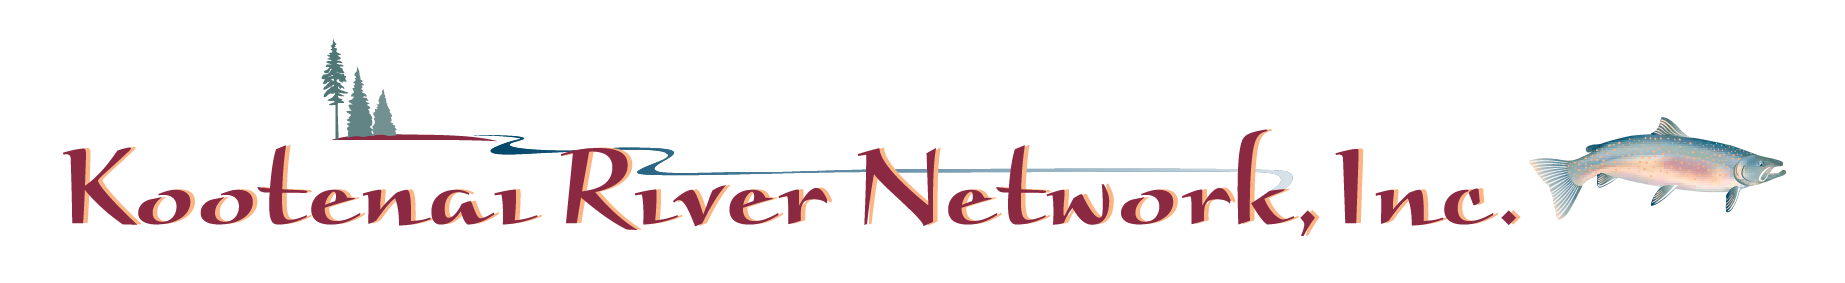 Kootenai River Network